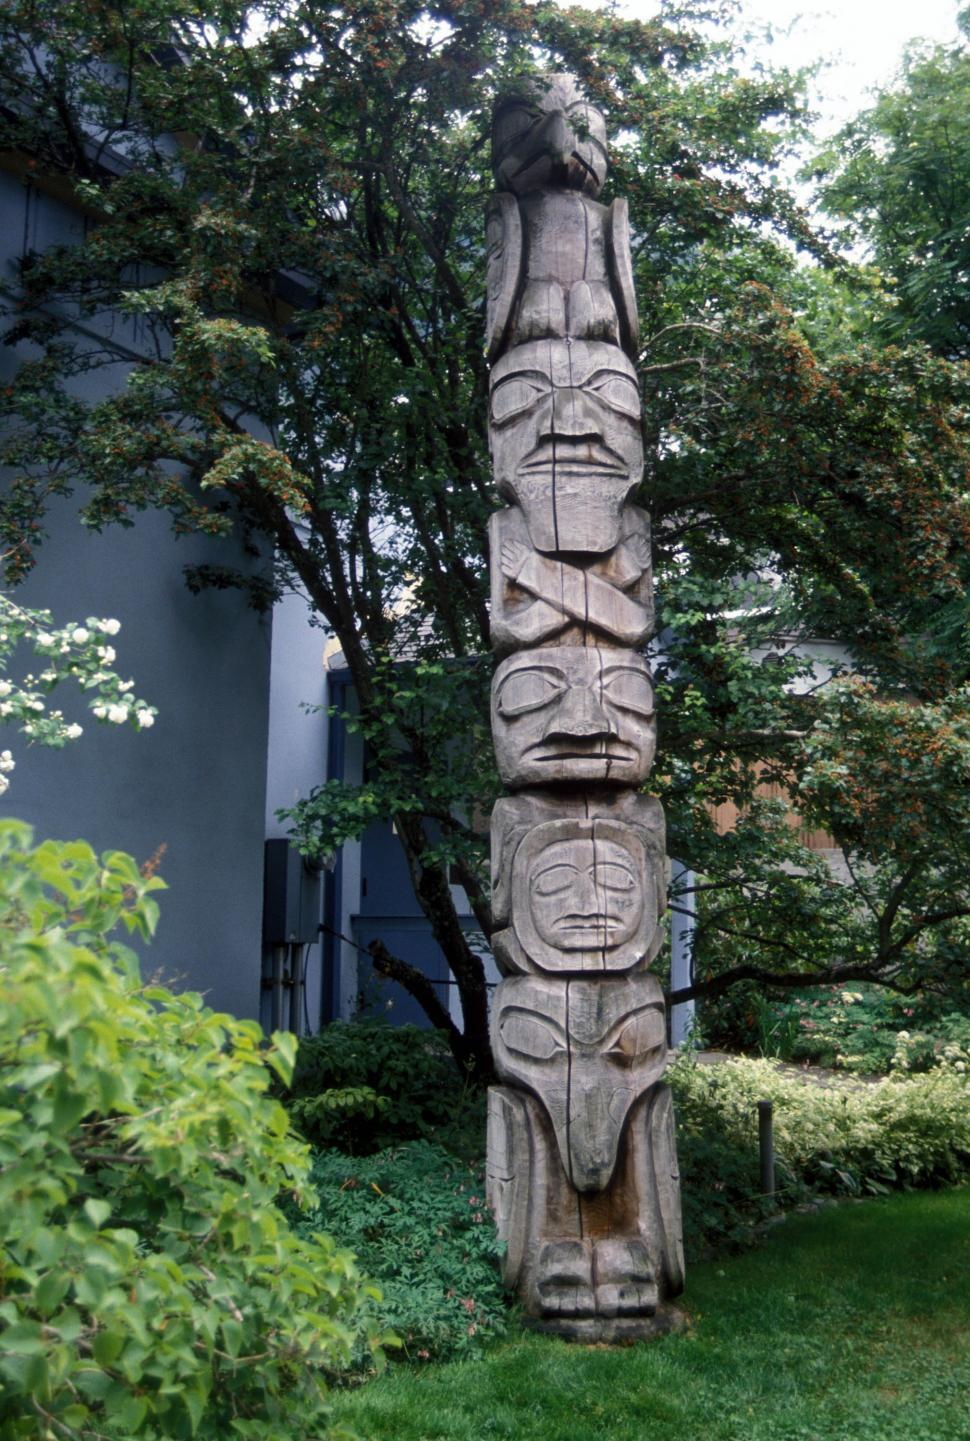 Download Free Stock HD Photo of Totem pole Online